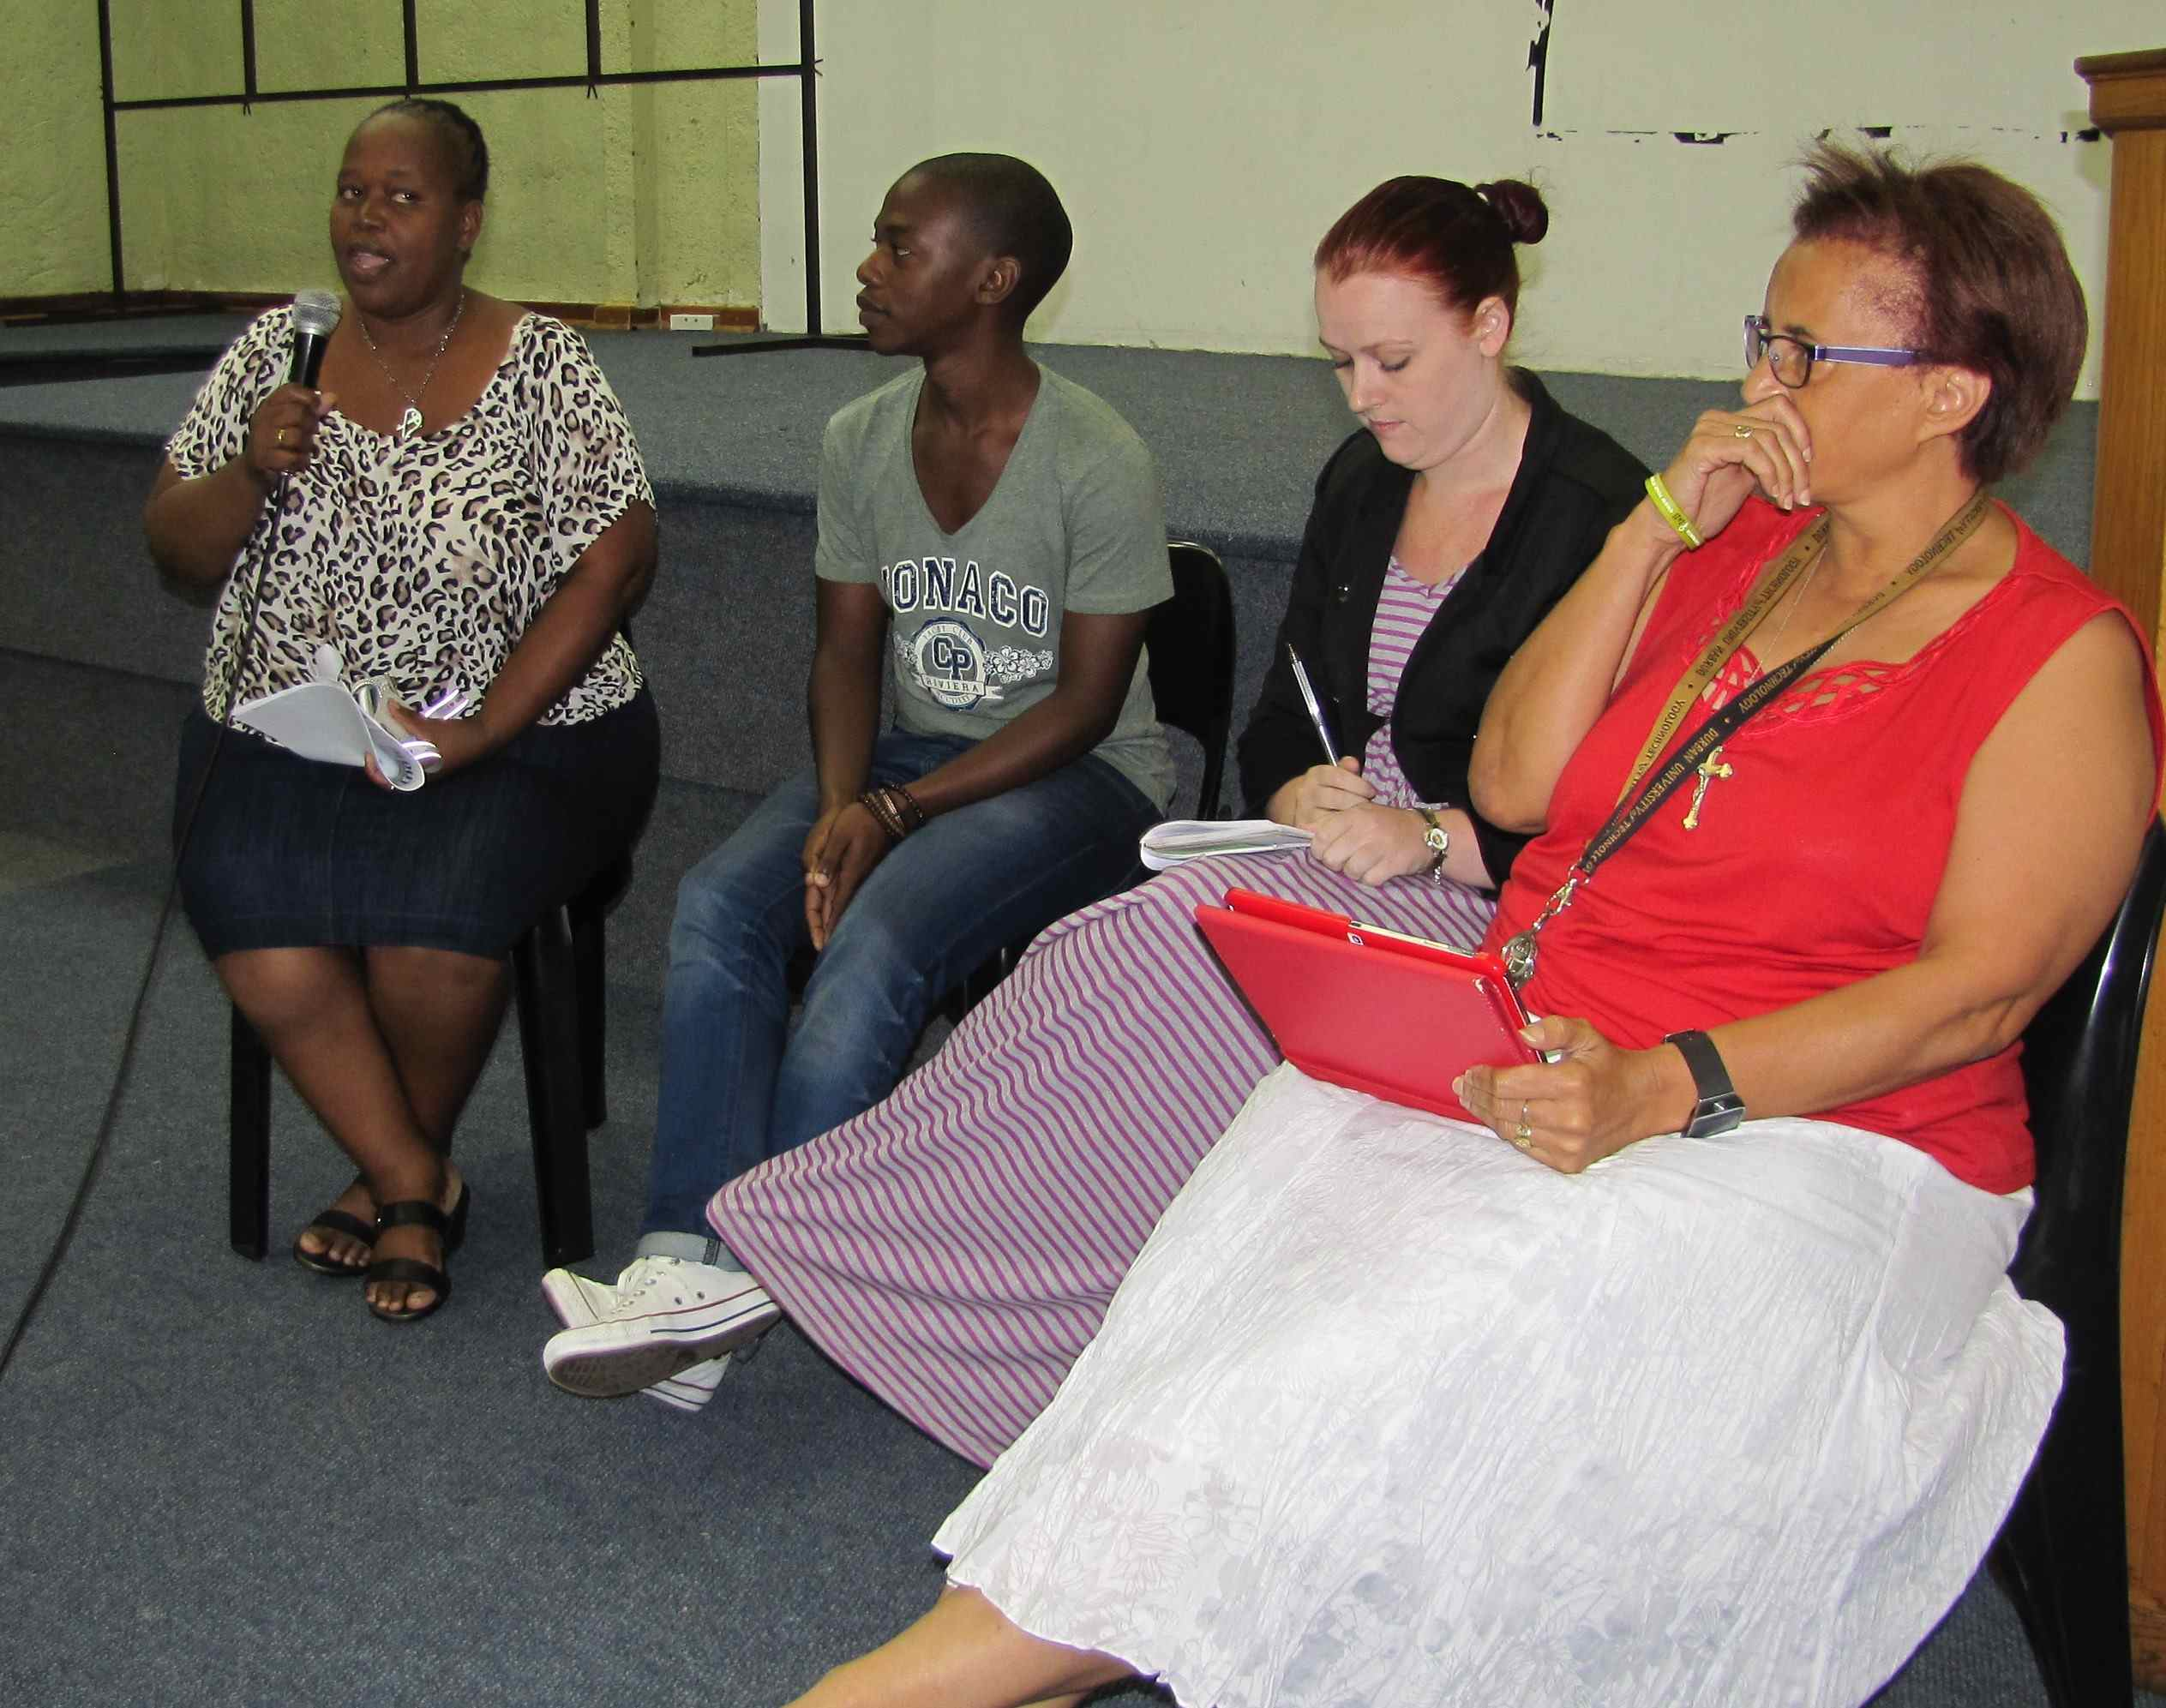 The panel from outside the course: Thobile Zulu, Melusi Dlamini, Jessica Parker, Delysia Timm